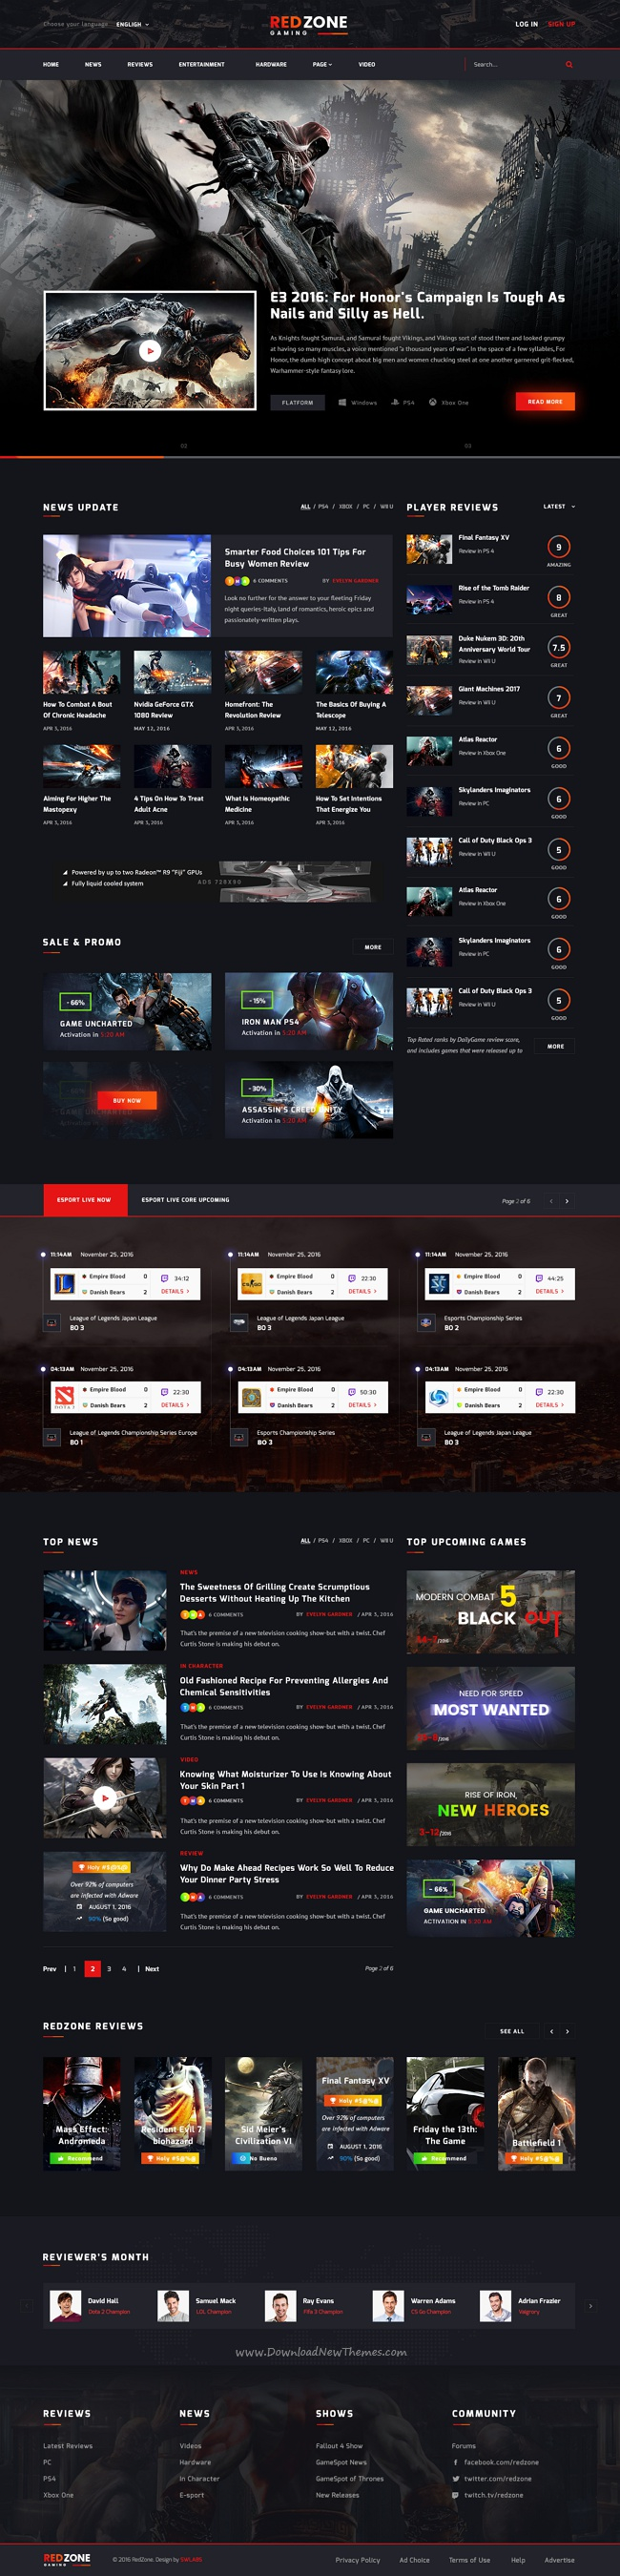 Pin By Chirag On Diseno Web Psd Templates Red Zone Templates